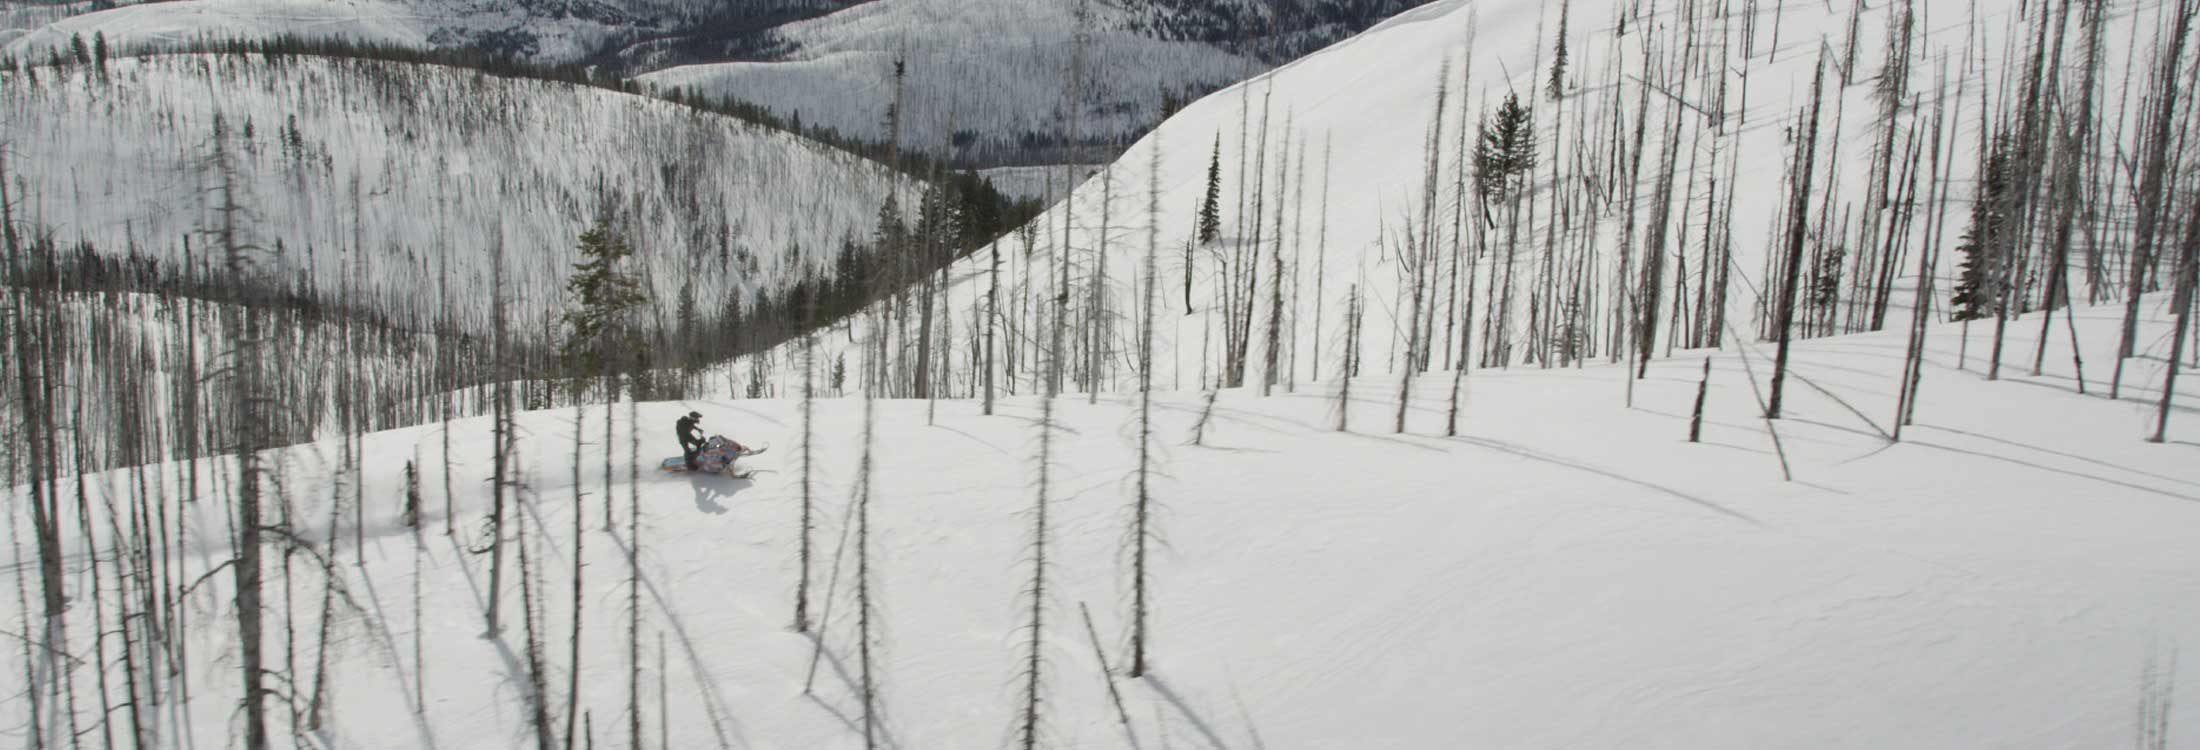 Win a snowmobiling trip to Montana.